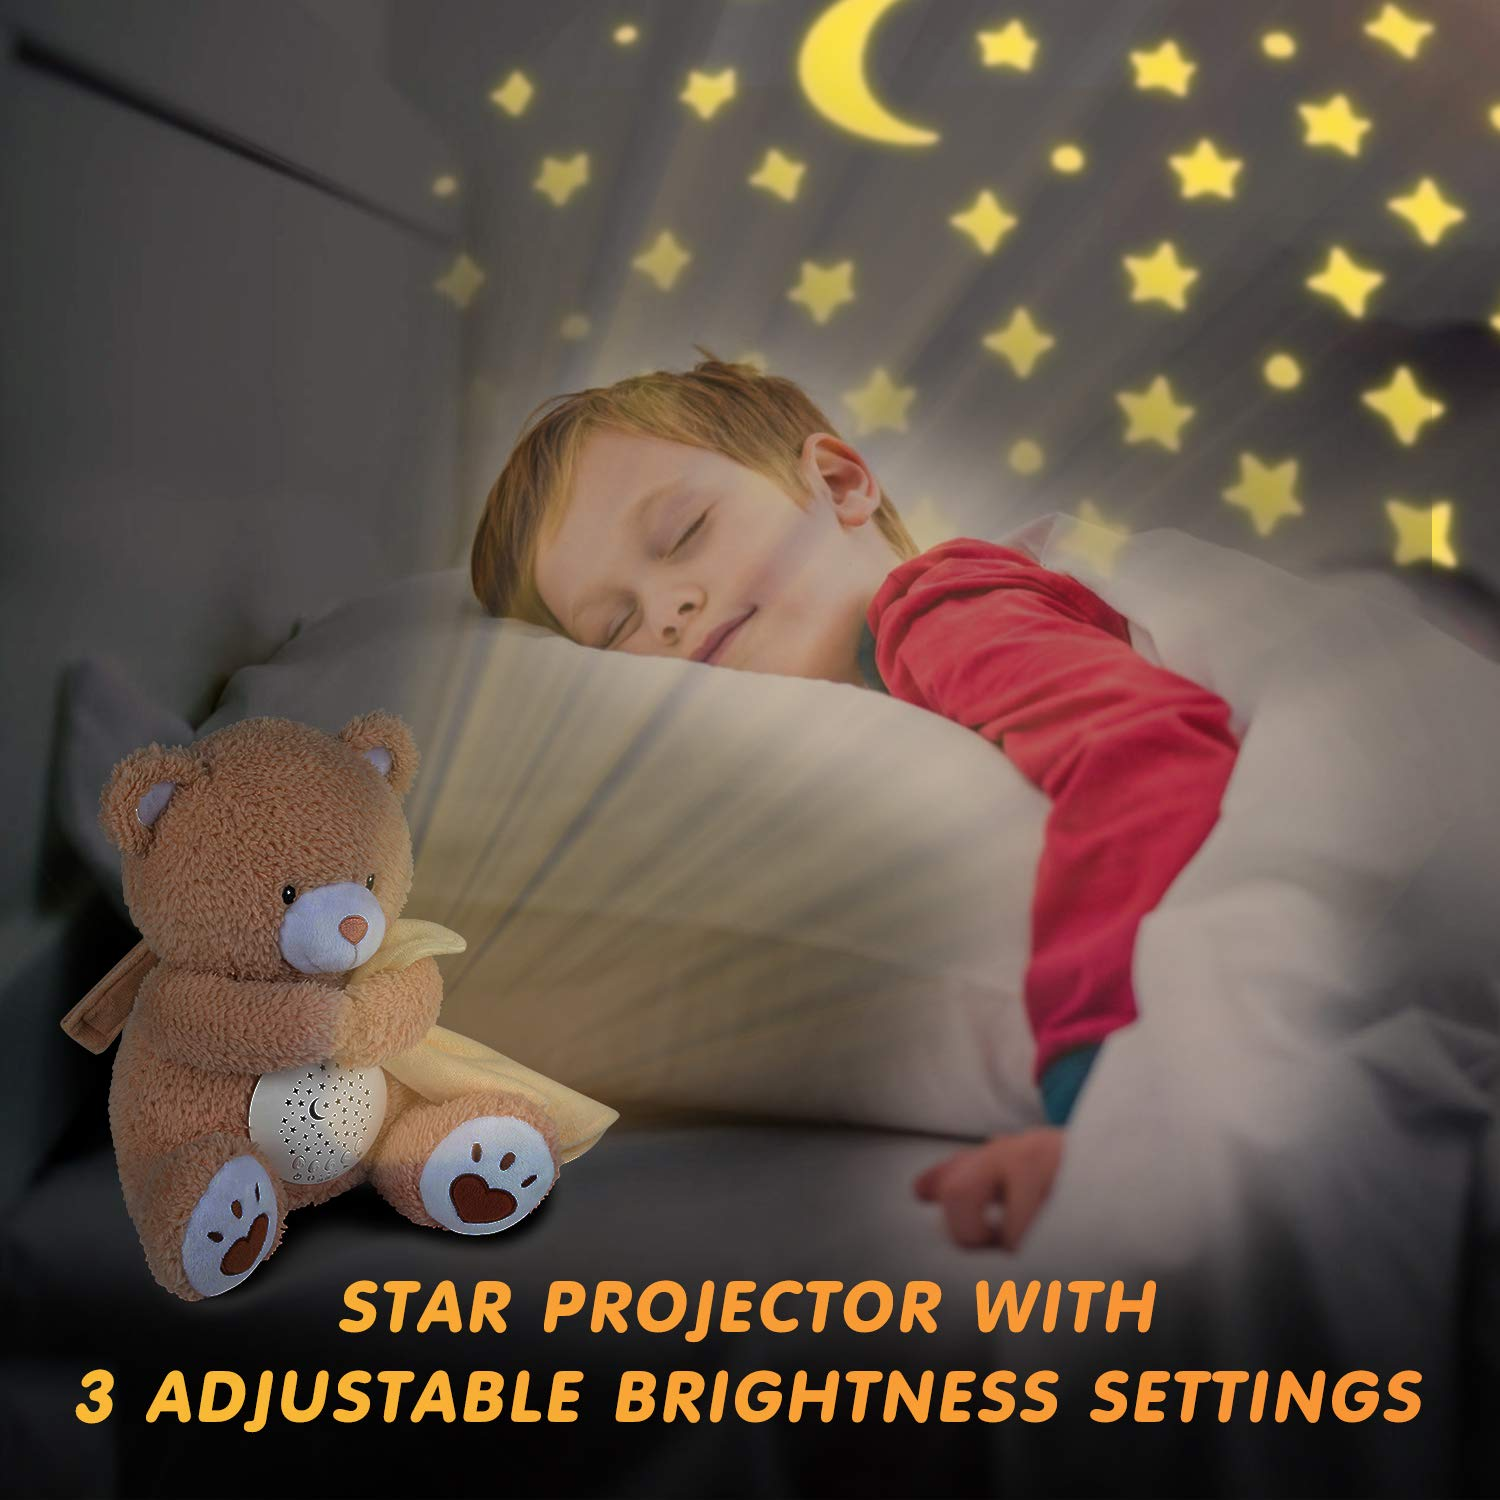 Nursery Decor Night Light Projector Toddler Crib Sleep Aid Lullabies /& Shusher White Noise Machine Sound Soother BEREST A11 Baby Sleep Soother Bear Baby Shower Gifts Portable Teddy Bear Toy